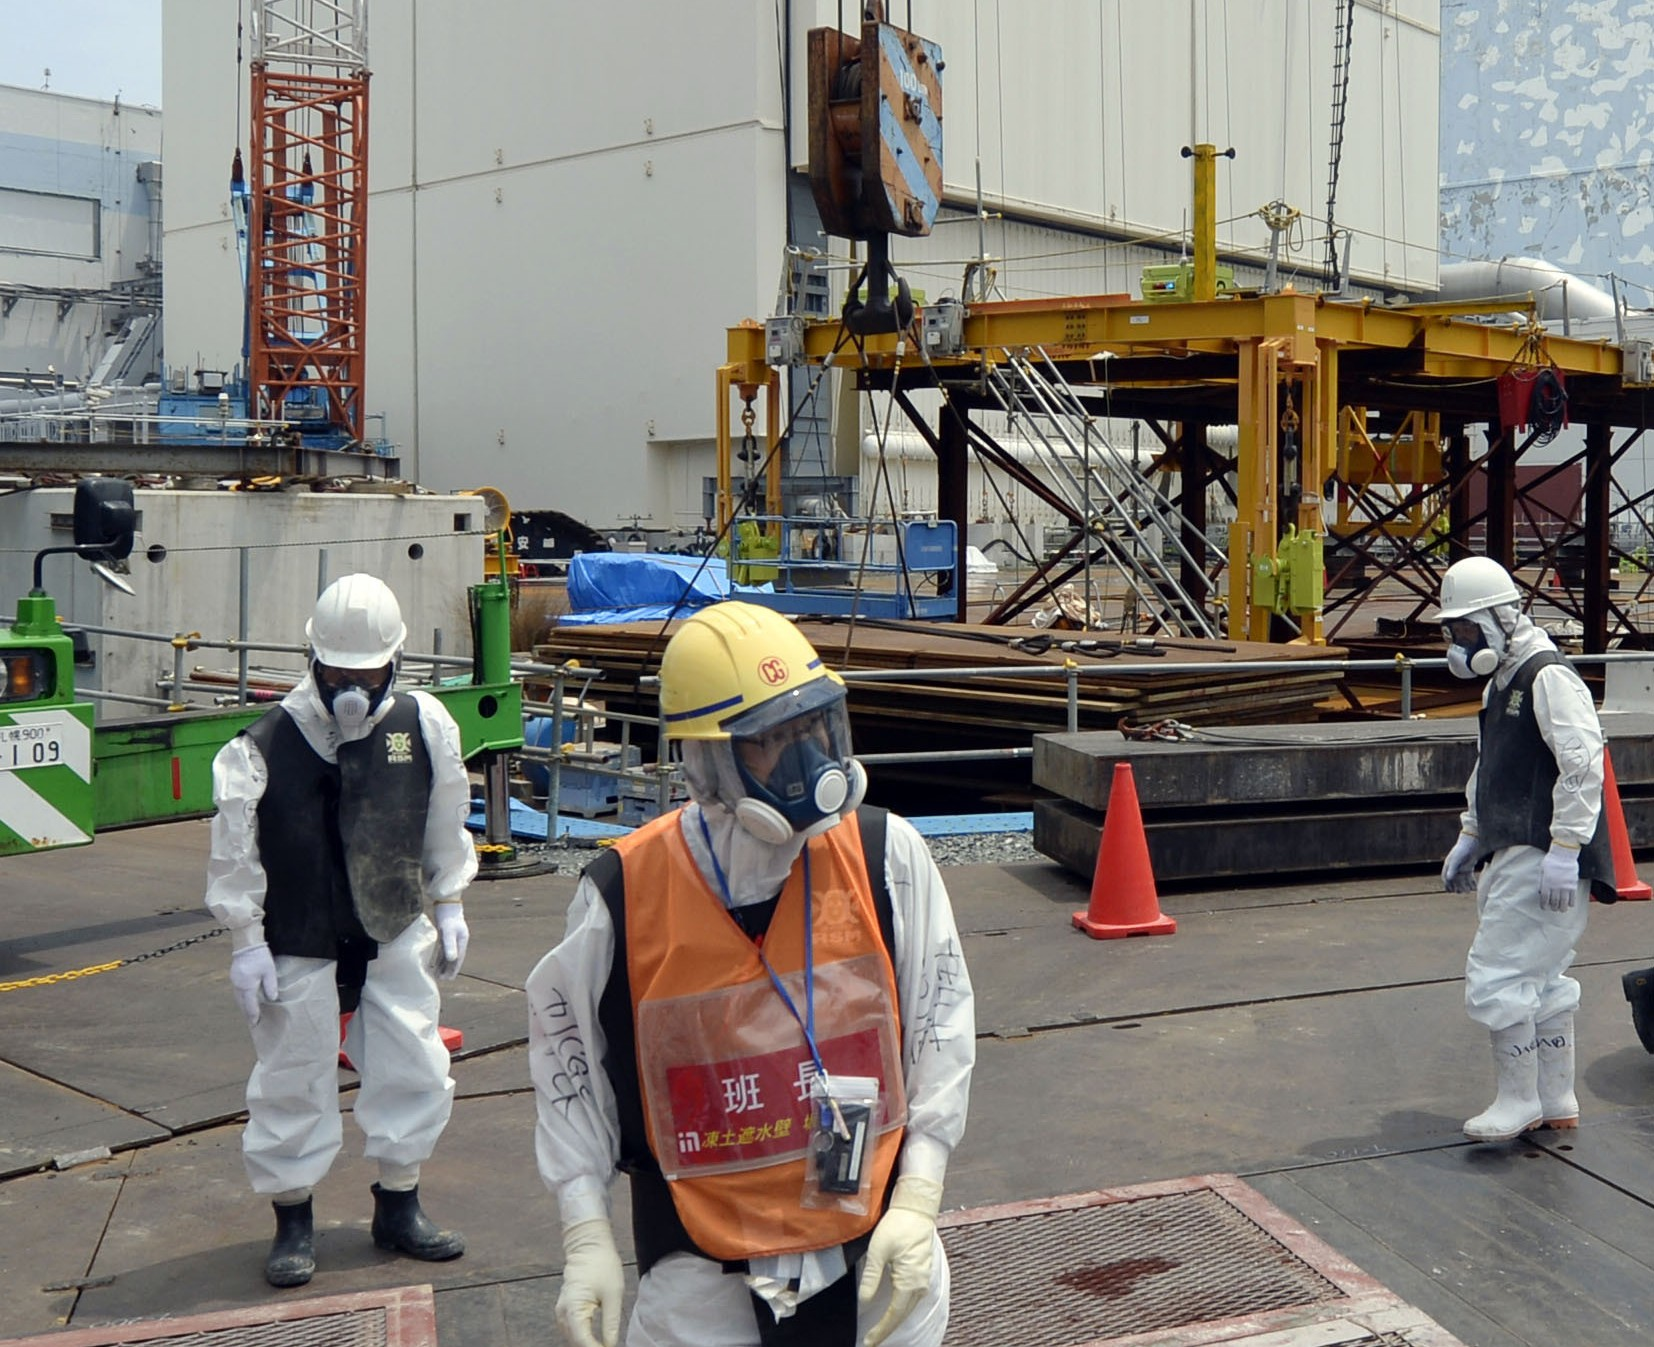 Fukushima S Impact On The Nuclear Industry Global Journalist